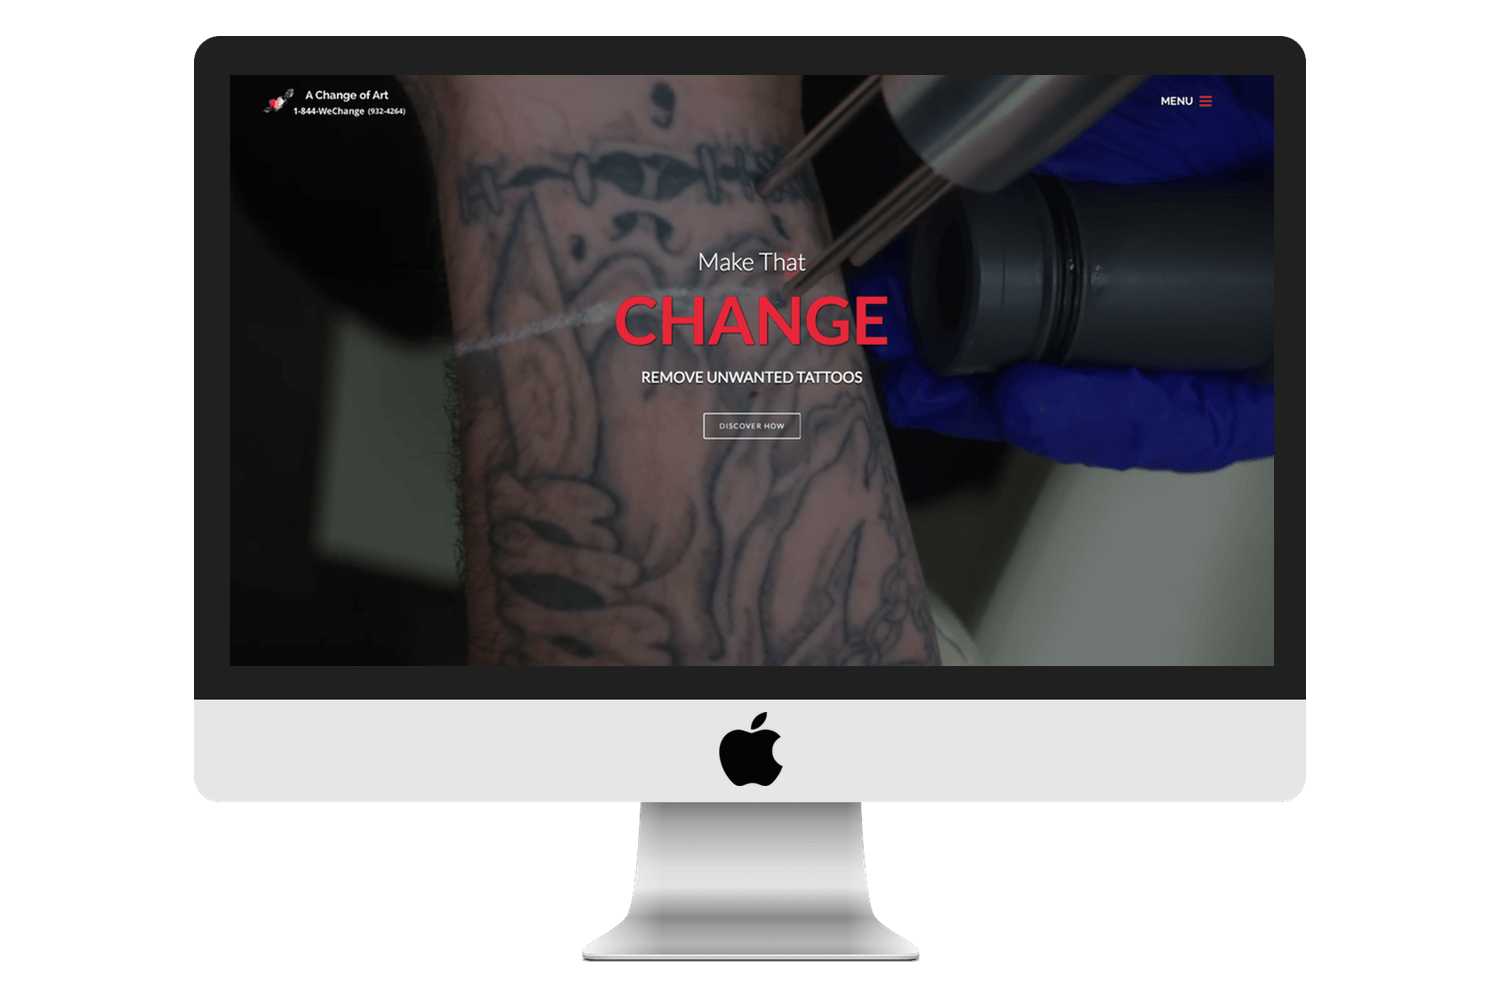 Image of responsive web design case study by Quetra Creative for A Change of Art Ecosystem